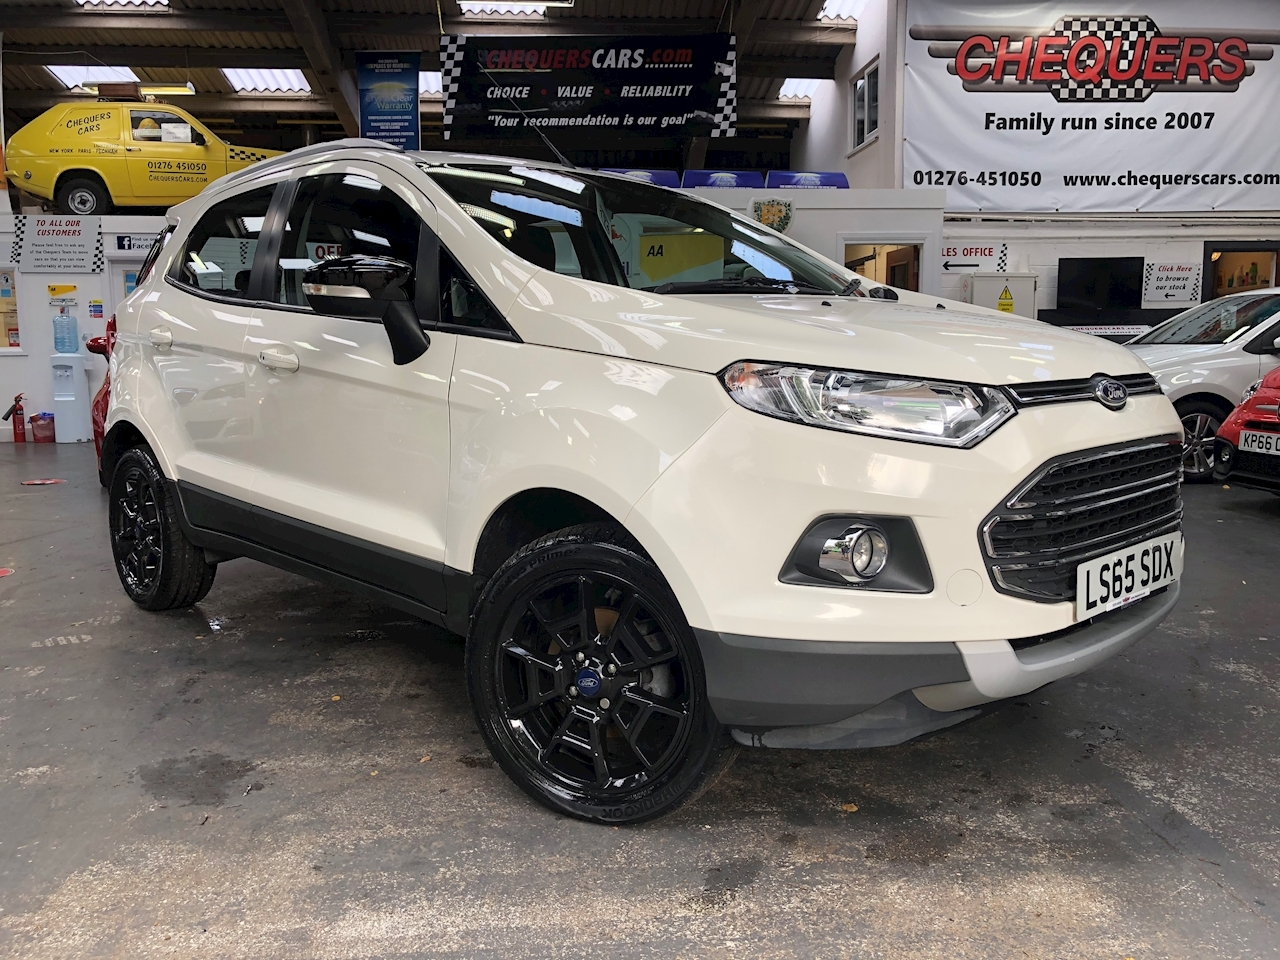 Ford EcoSport Titanium 1.0 5dr Hatchback Manual Petrol